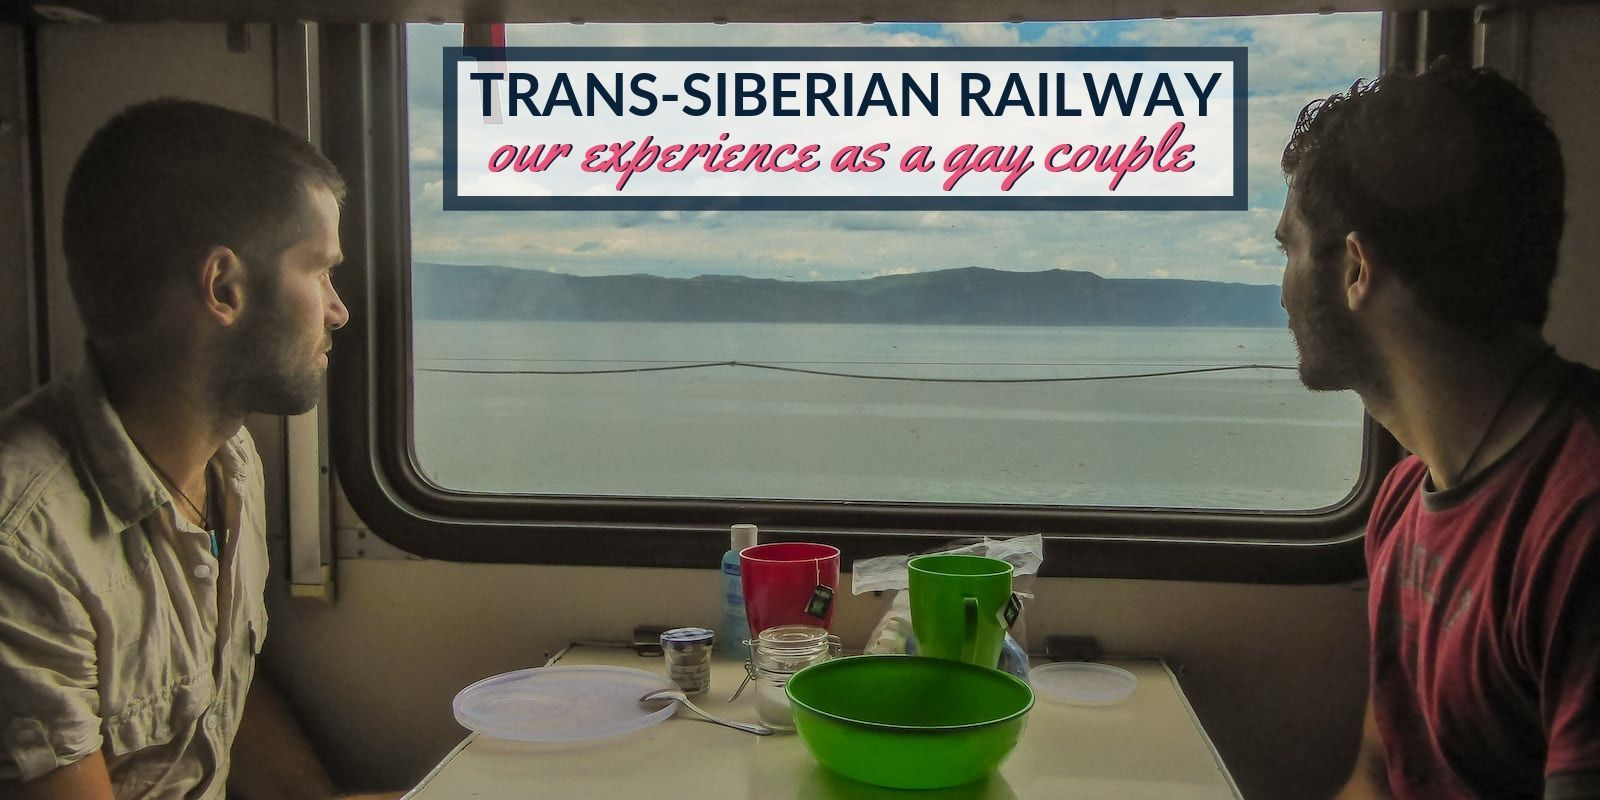 Trans-Siberian railway: our experience as a gay couple